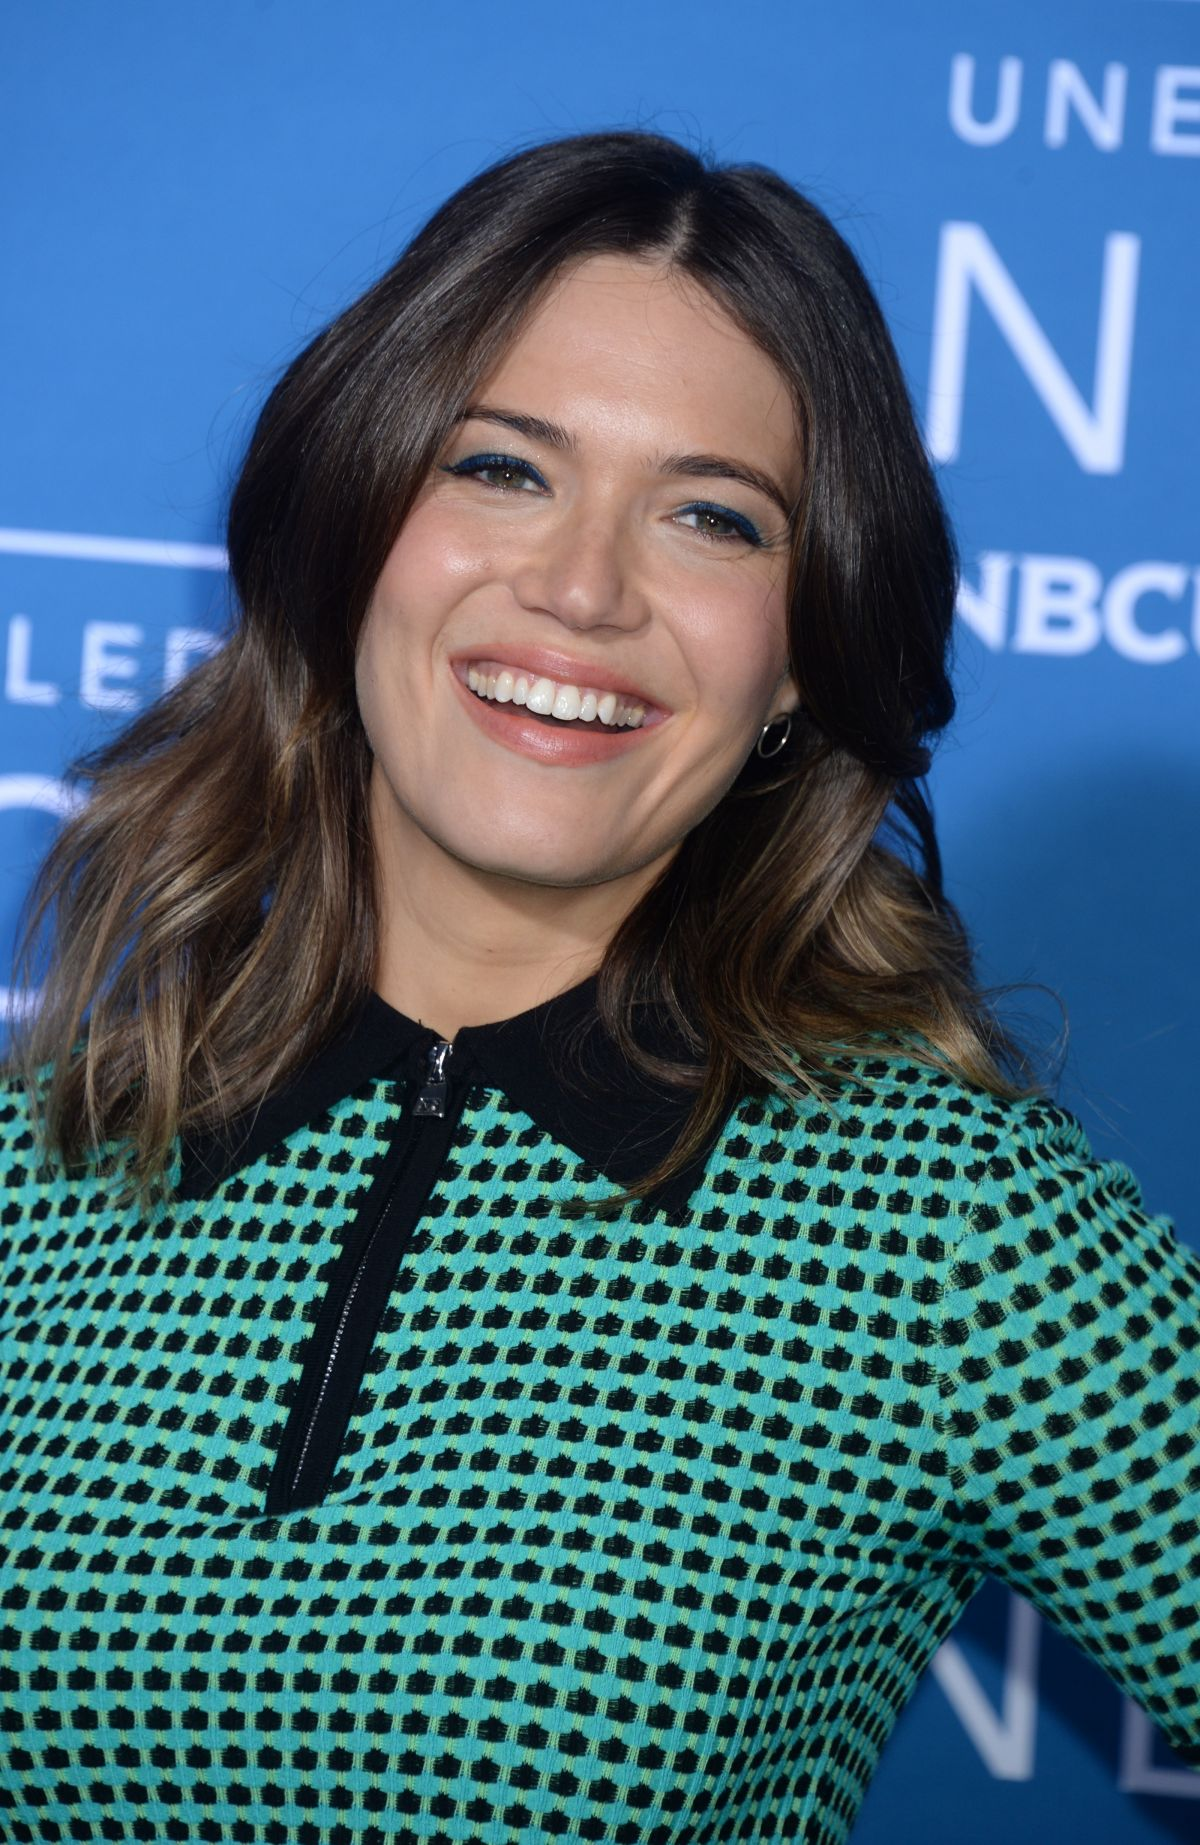 Mandy Moore At NBCUniversal Upfront in New York City   mandy-moore-at-nbcuniversal-upfront-in-new-york-city_5